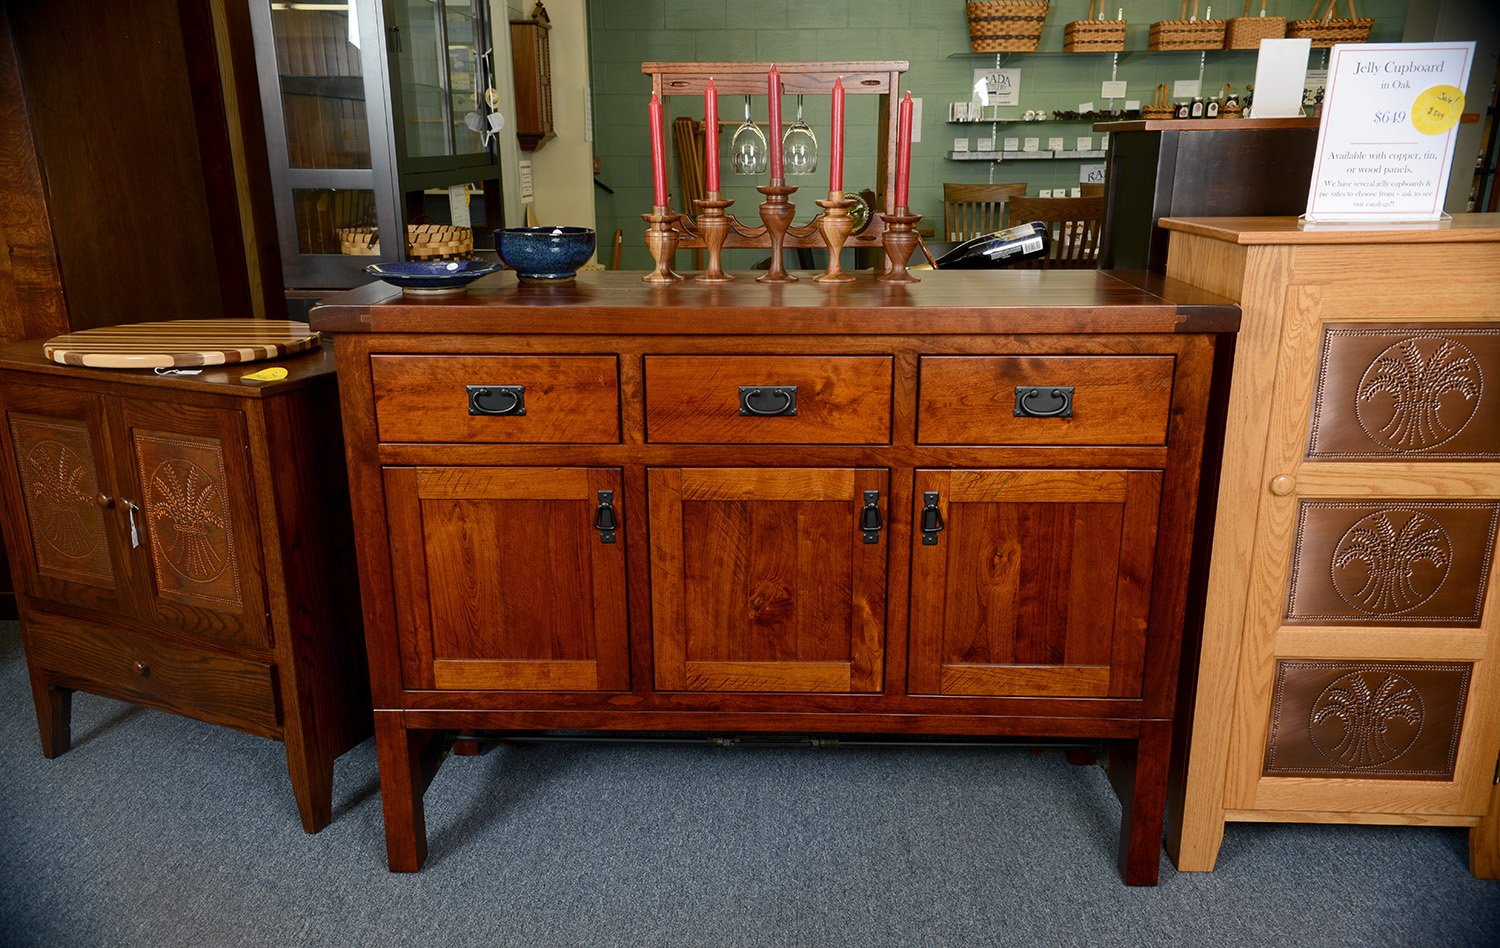 Caring for your amish furniture